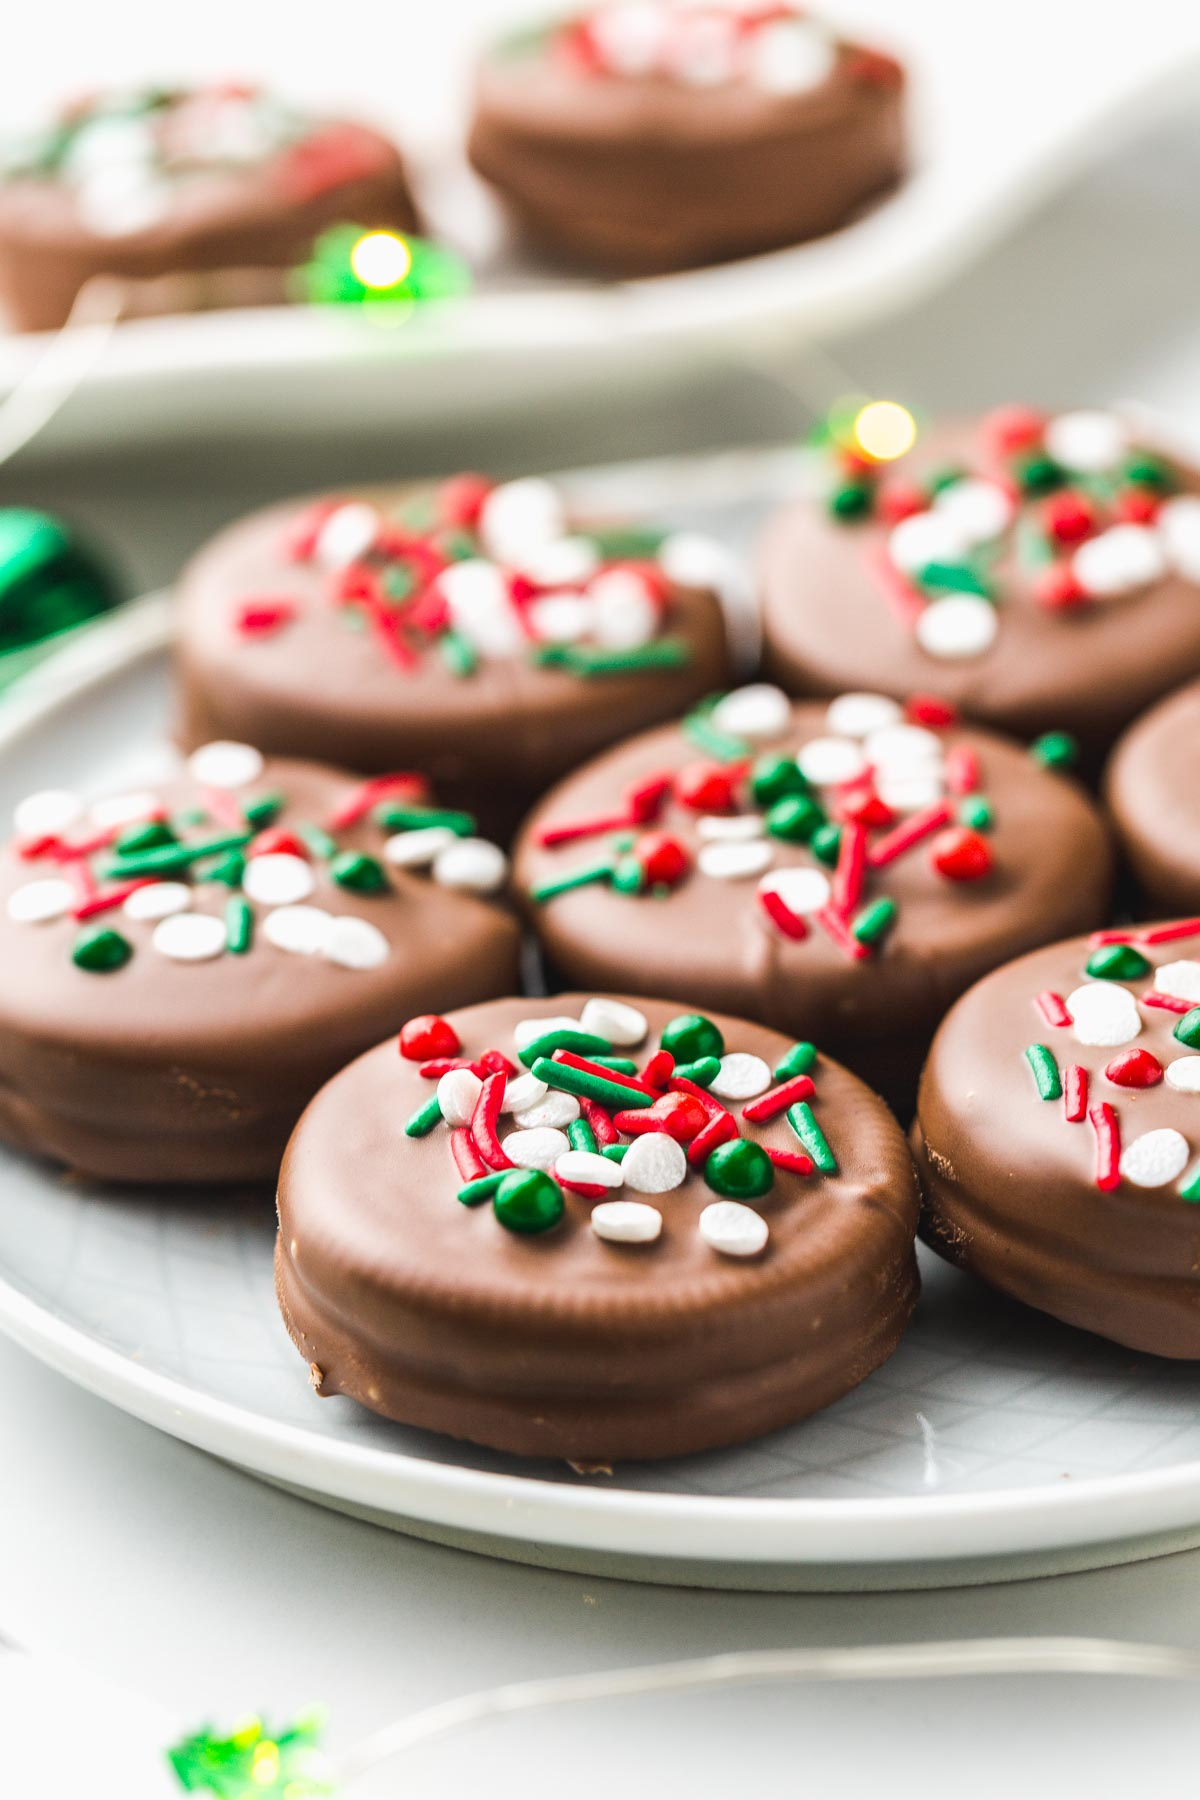 7 Chocolate Covered Oreos on a plate, side view.